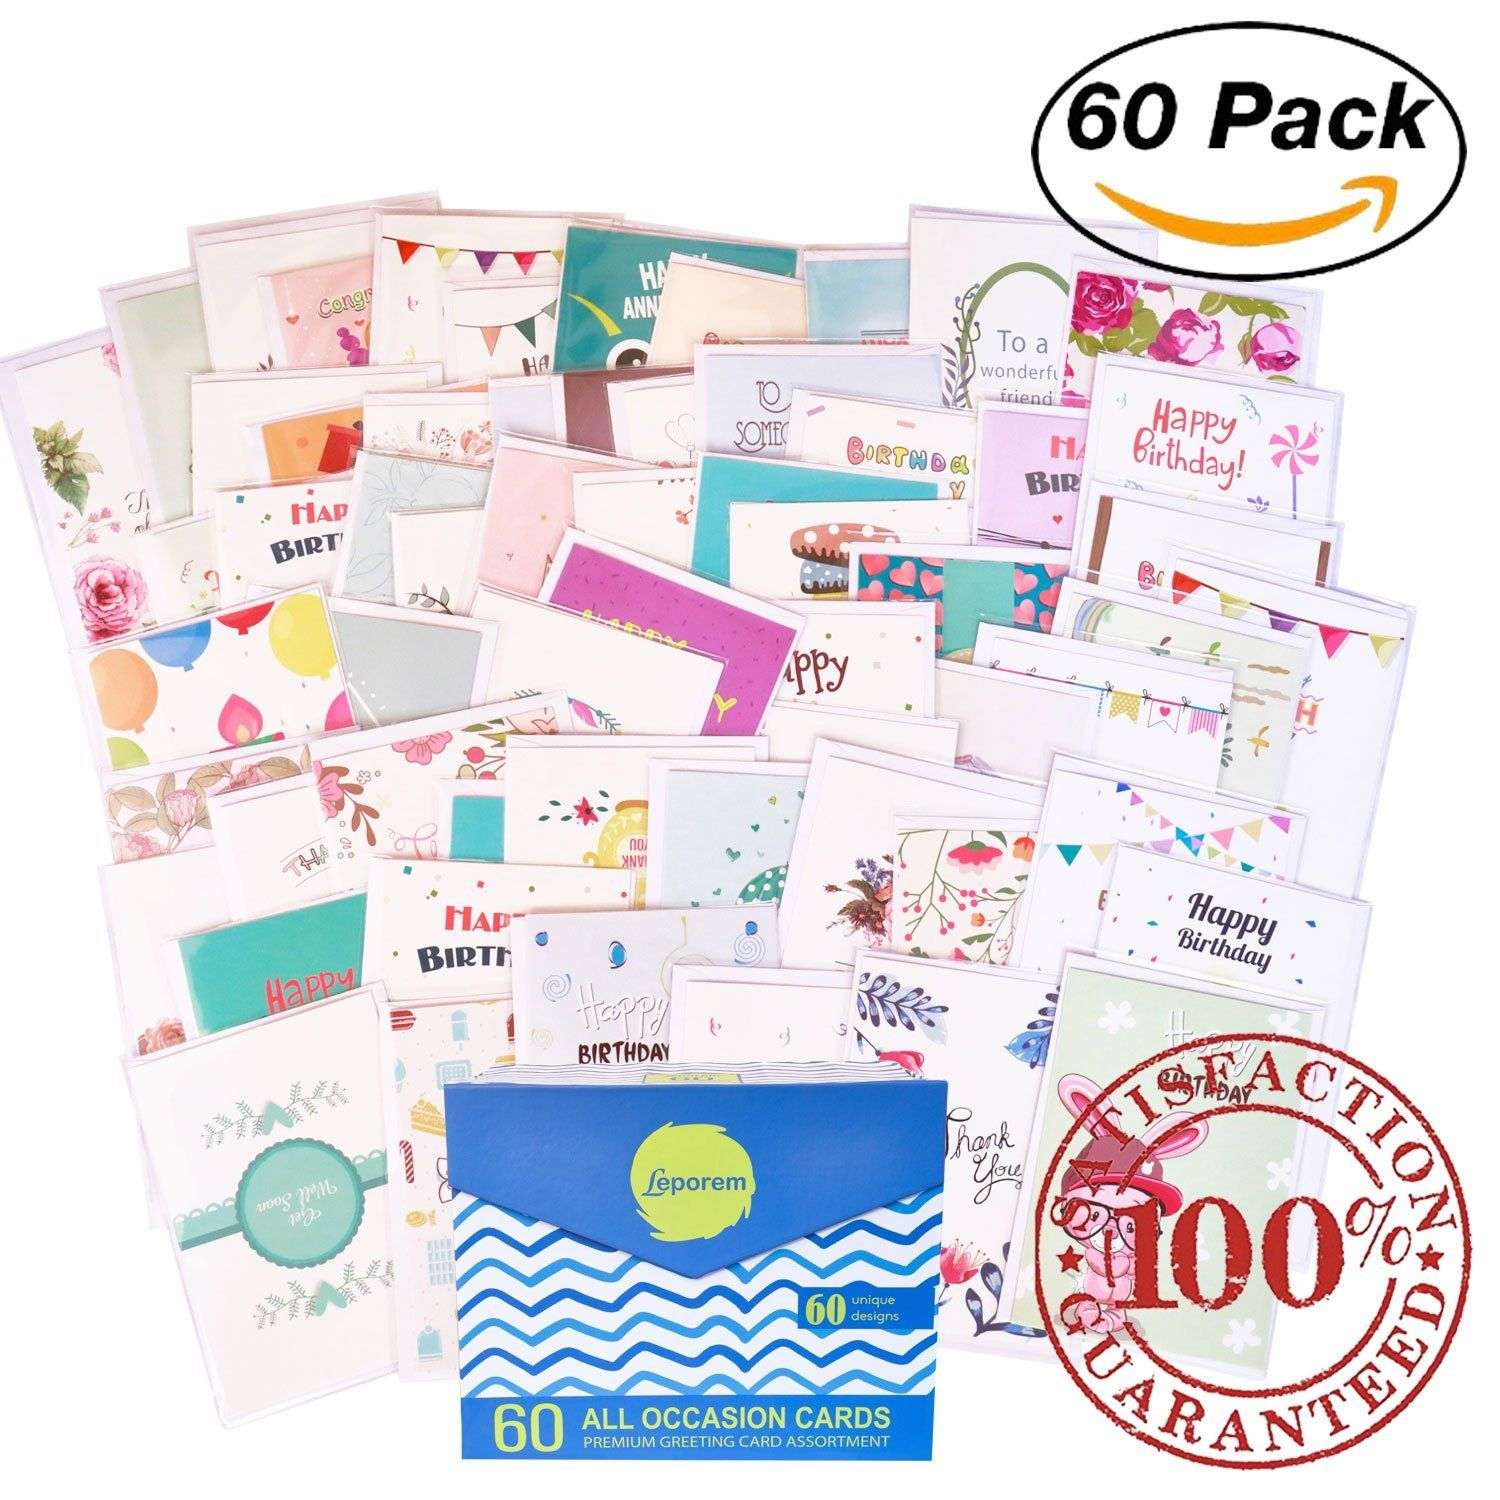 Amazon Com 60 Pack Assorted All Occasion Greeting Cards With A Magnetic Organizer 5 X 7 Inches Happy Birthday Get Well T Cards Happy Birthday Card Making